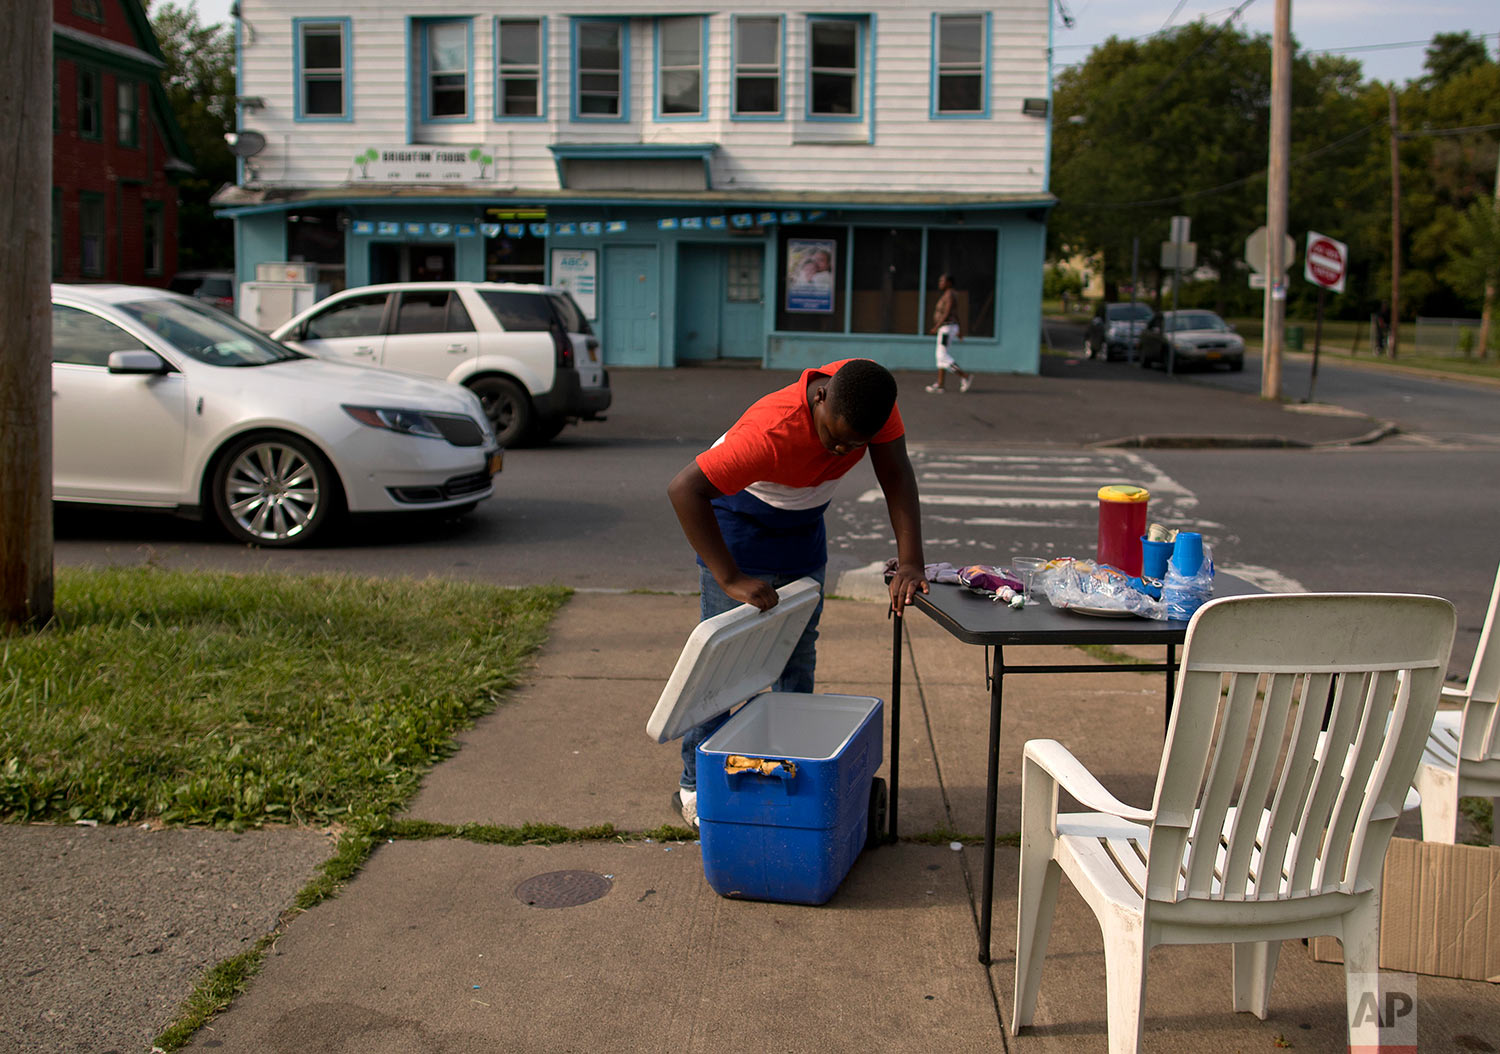 Deivion Rohdafox checks a cooler he and his brother and cousins were using to sell snacks, soda and sweetened drinks on a street corner of their South Side neighborhood, Monday, Aug. 21, 2017, in Syracuse, N.Y. The 11-year-old was hoping to use the money to buy school supplies. Syracuse, on the eastern fringe of upstate New York's Finger Lakes region, has struggled to find its footing since factories making air conditioners and auto parts shut down. (AP Photo/Julie Jacobson)